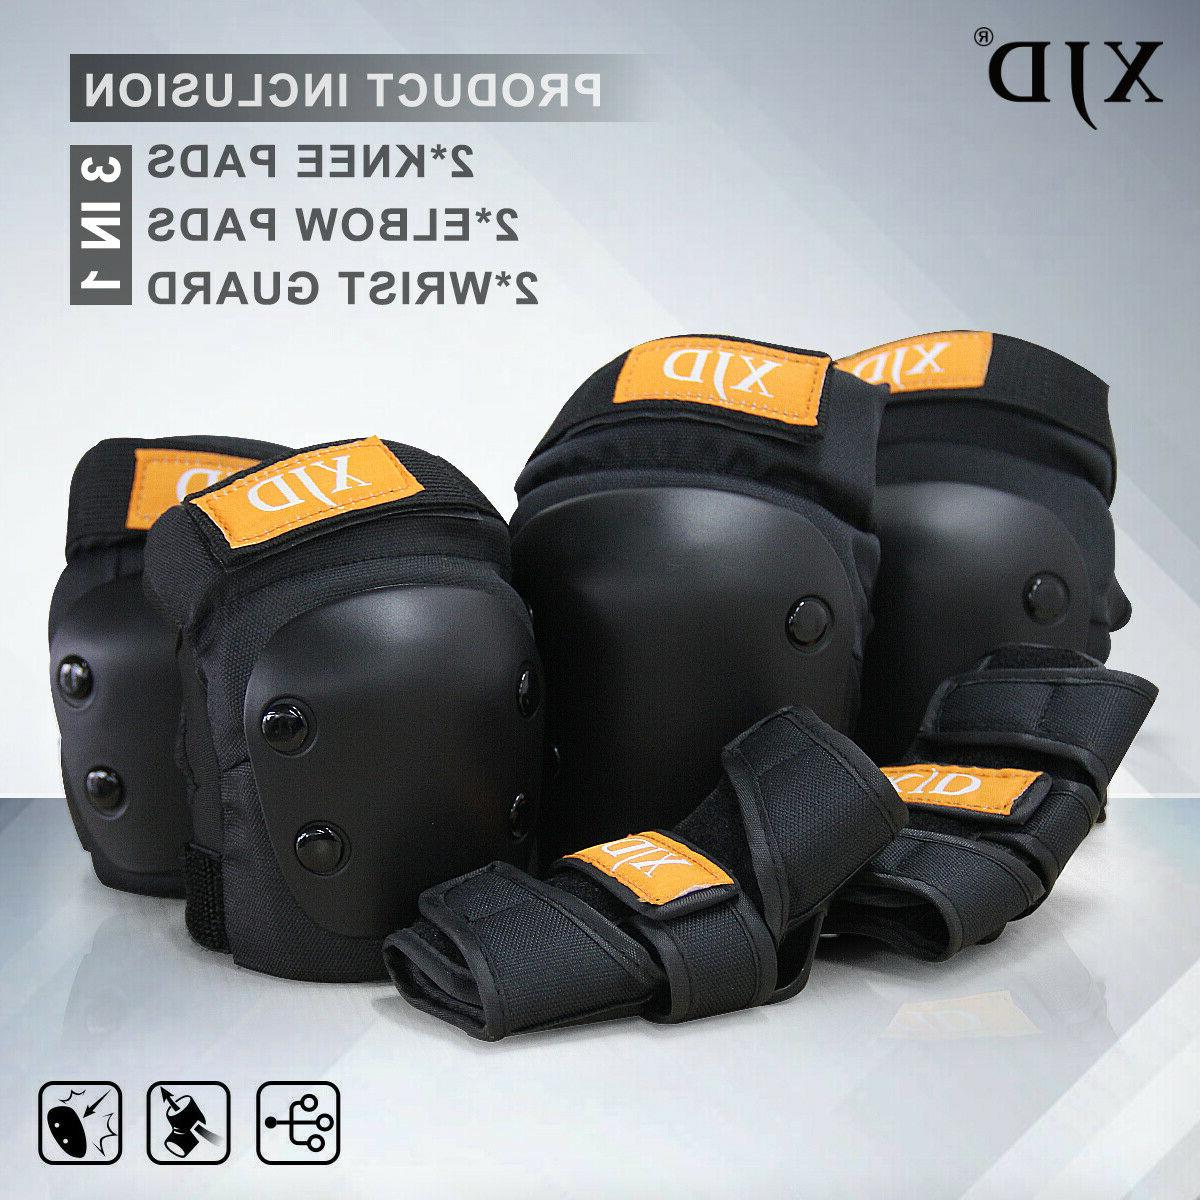 XJD Kids Protective Gear Set 3 in 1 Knee Pads Elbow Pads Wri